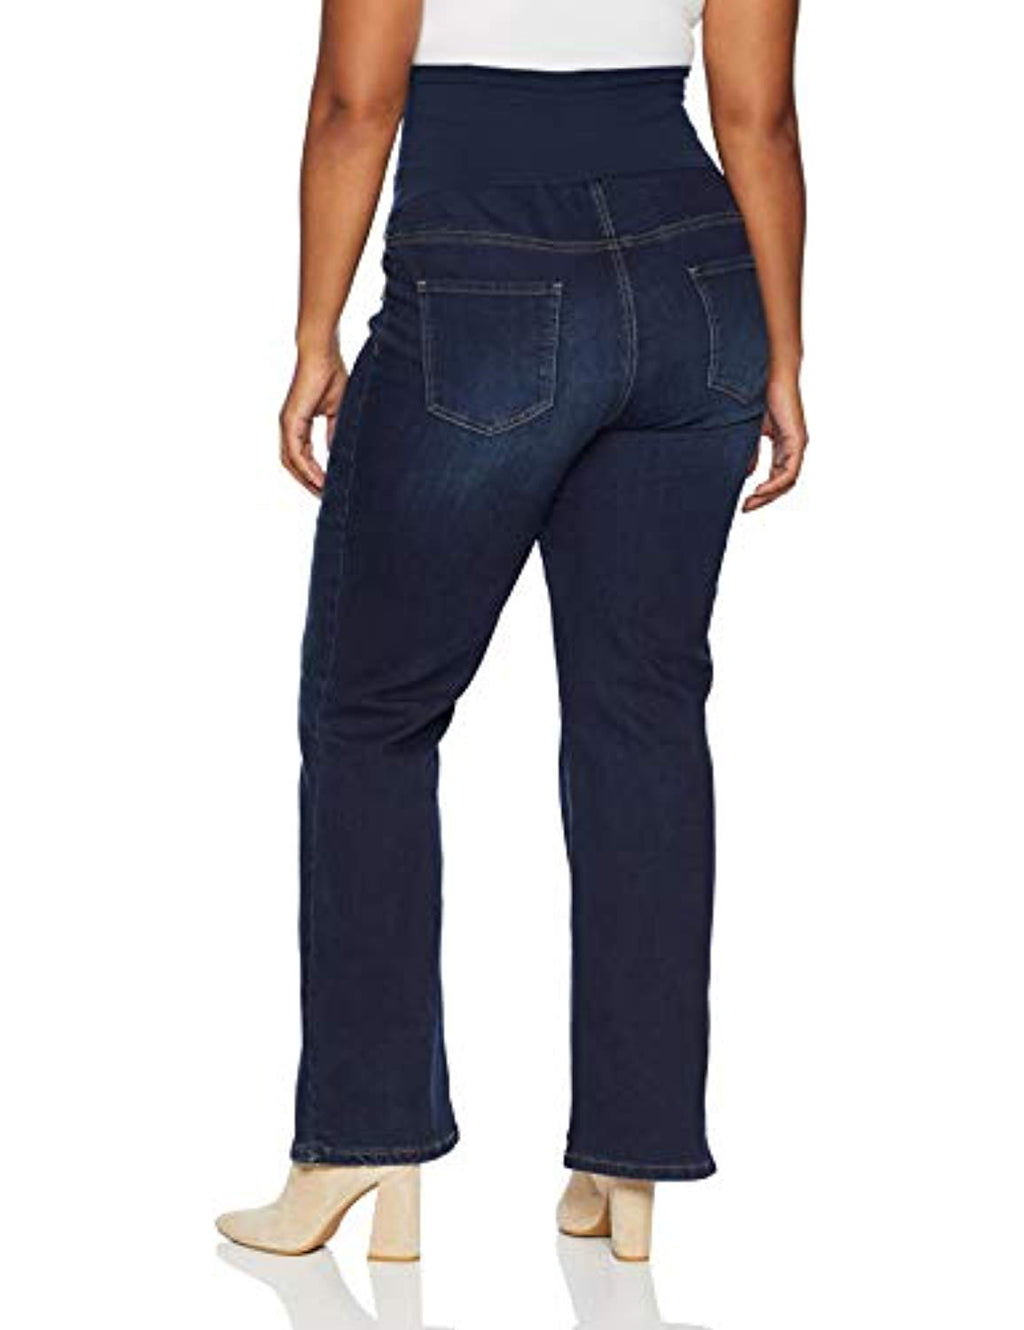 Plus Size Stretch Boot Cut Maternity Jeans - Mommylicious